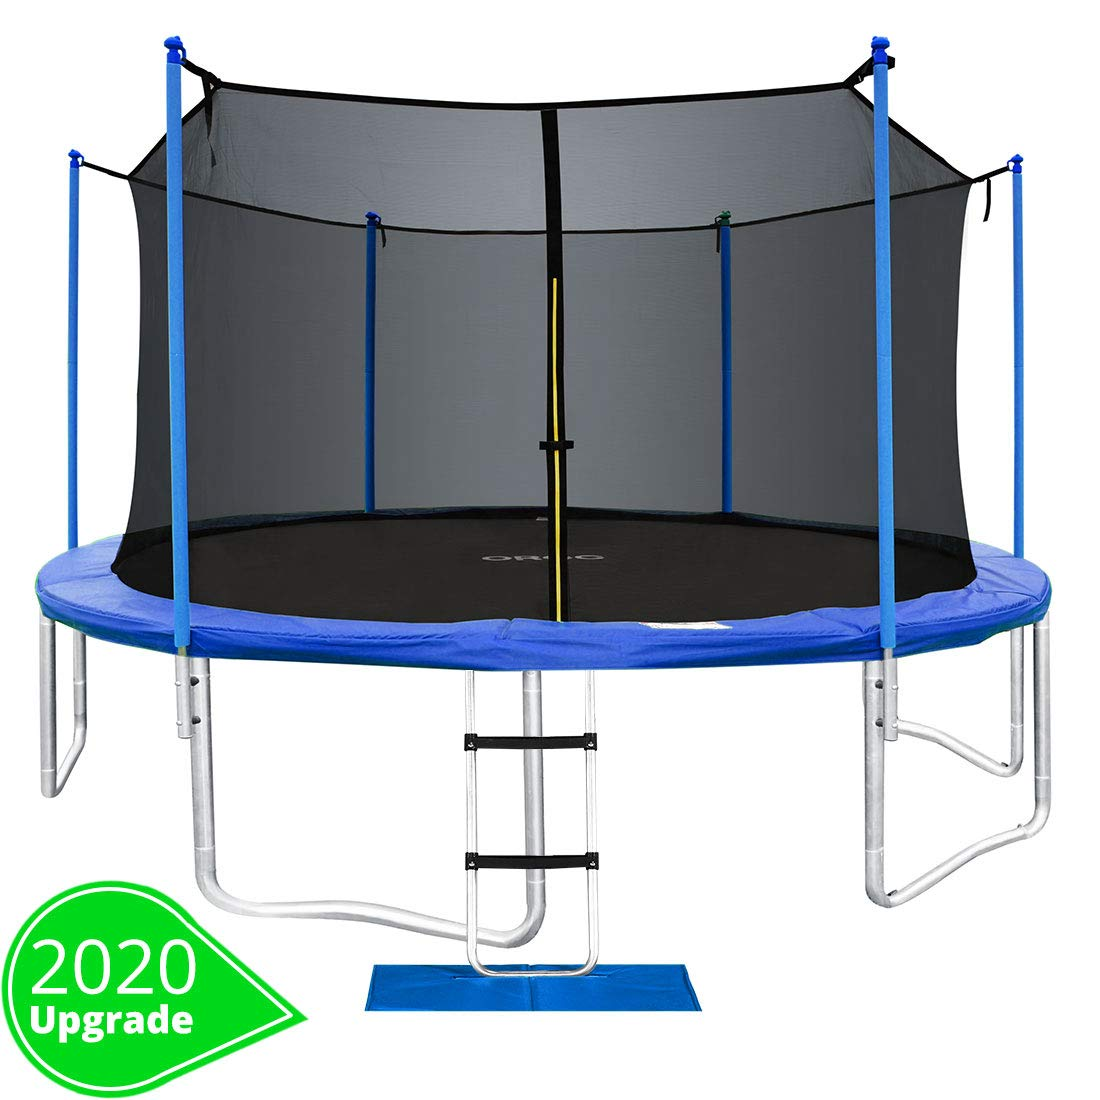 ORCC New Upgrade 15 14 12 10 FT Trampoline with Safety Enclosure Net Wind Stakes Rain Cover Ladder,Outdoor Trampoline with TUV Certificated by ORCC